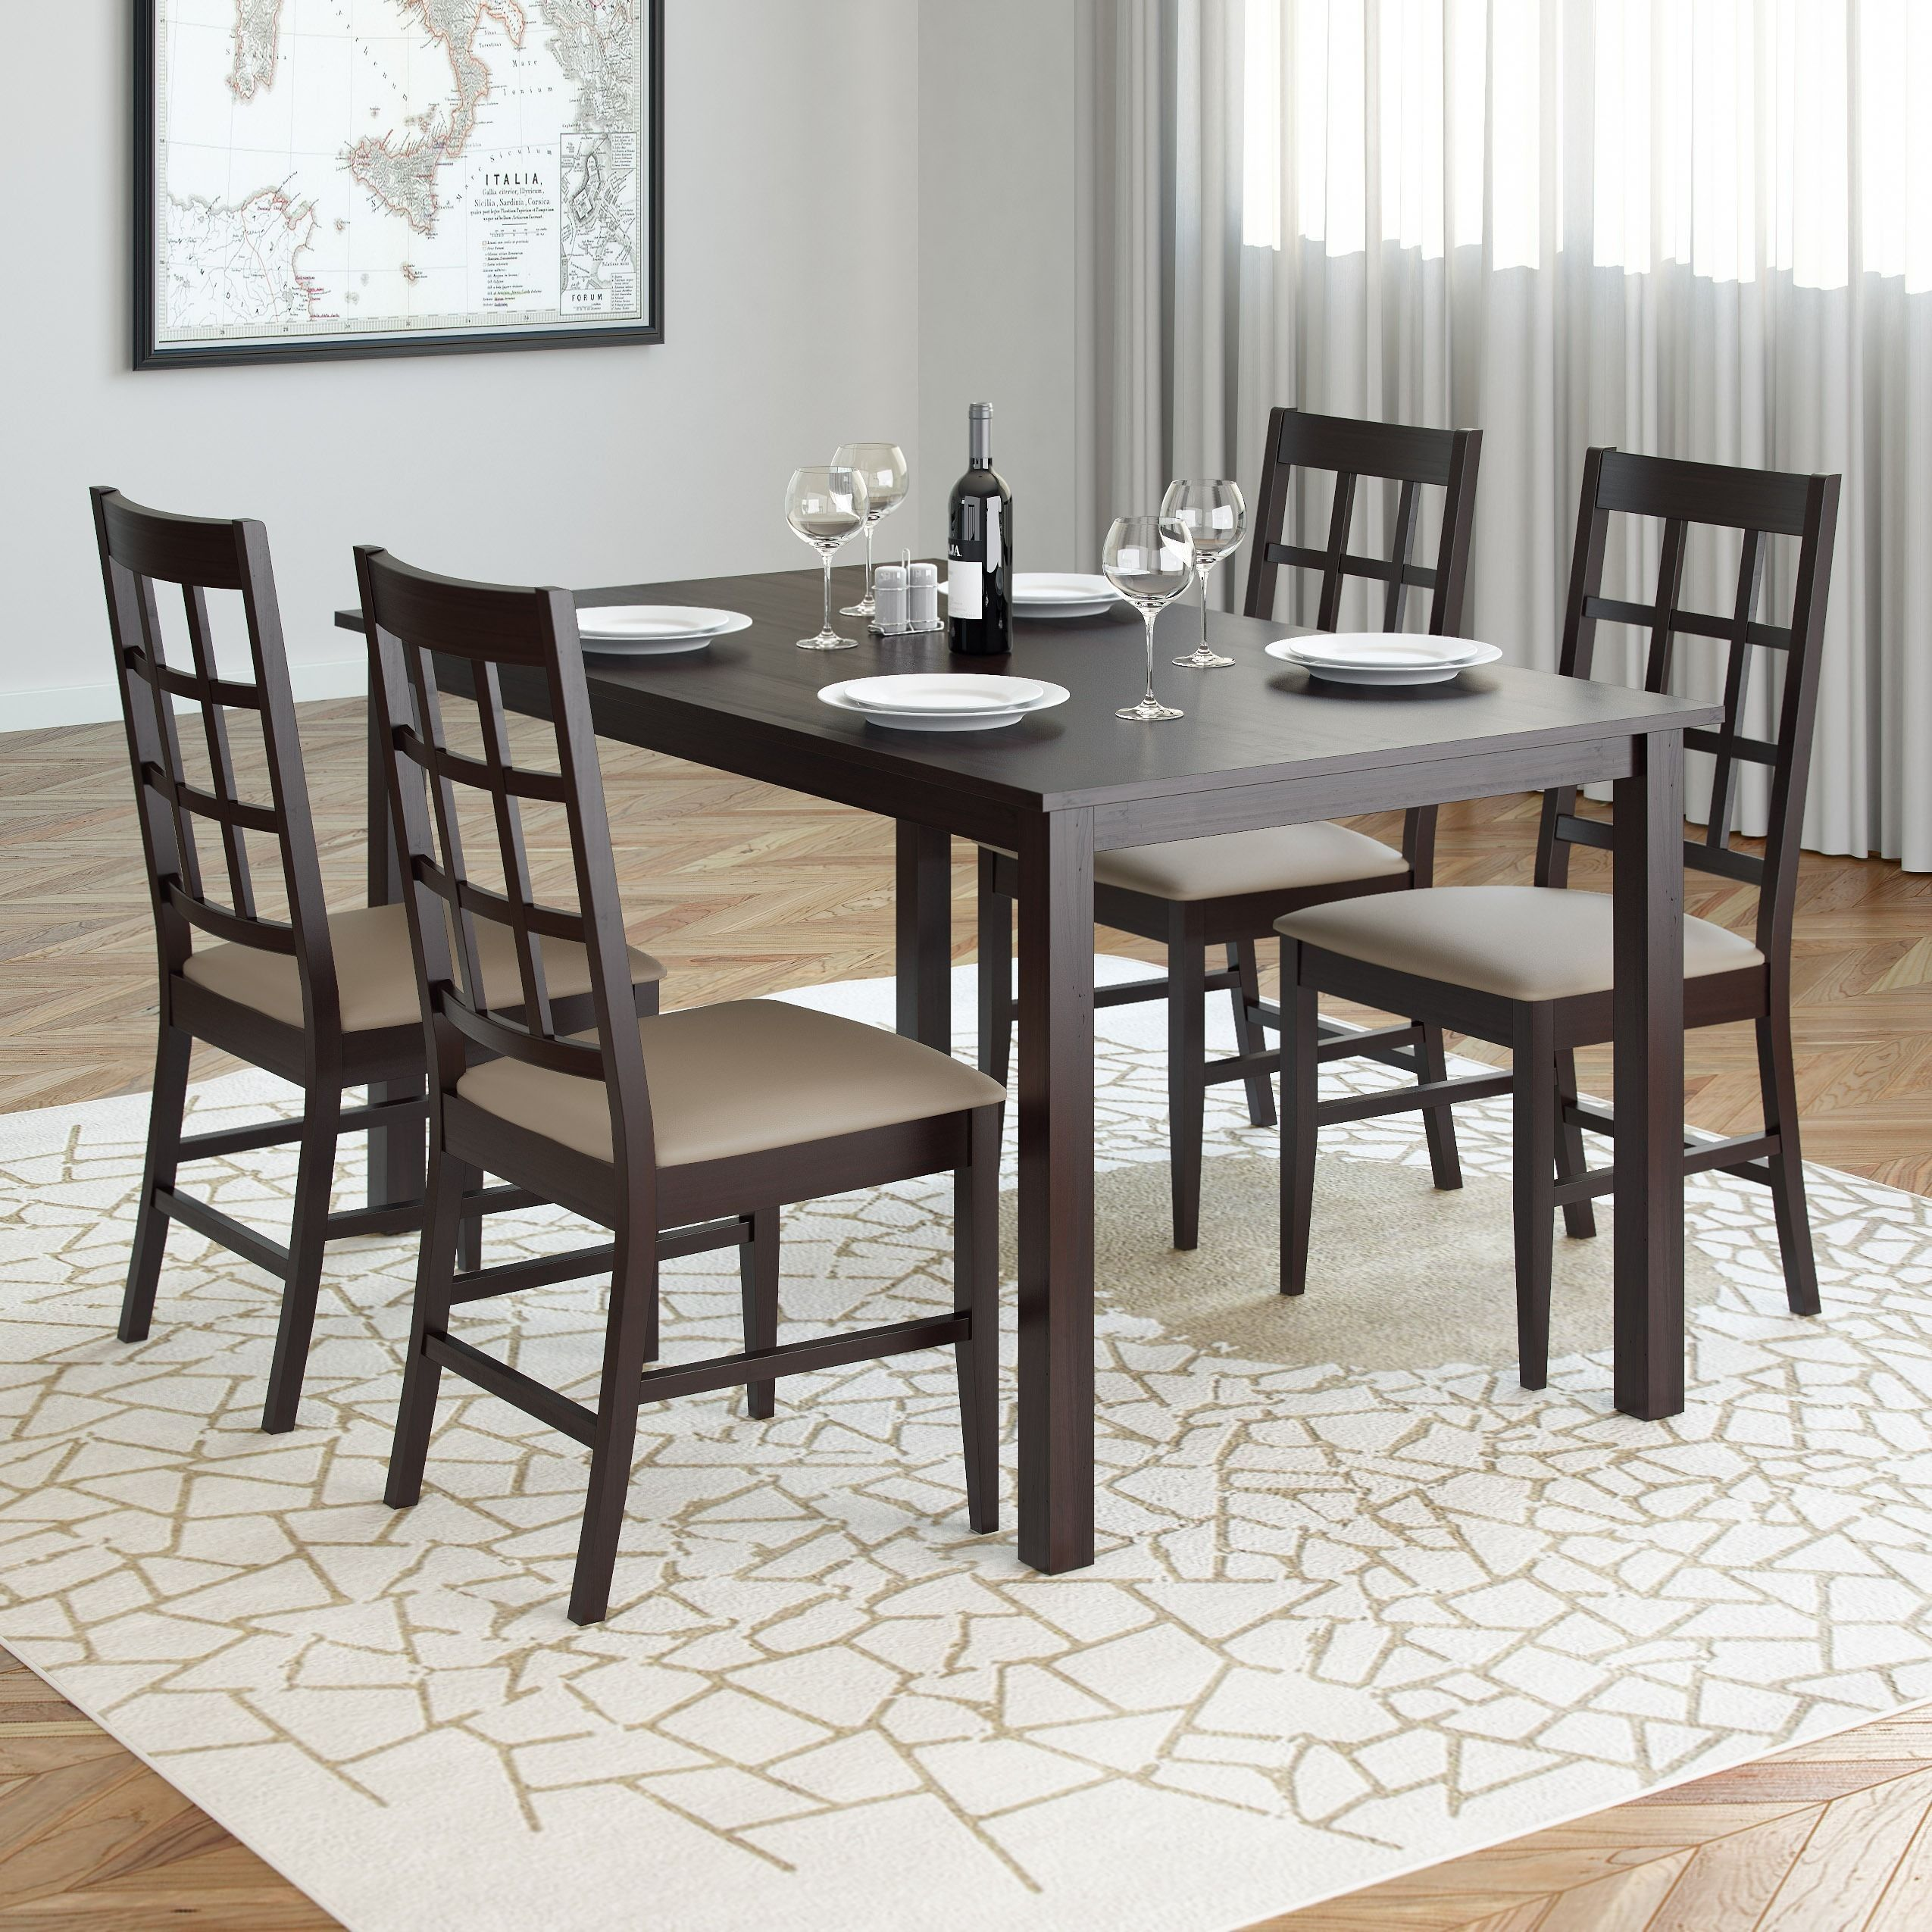 CorLiving DRG 795 Z6 Atwood 5 Piece Dining Set With Taupe Stone Leatherette